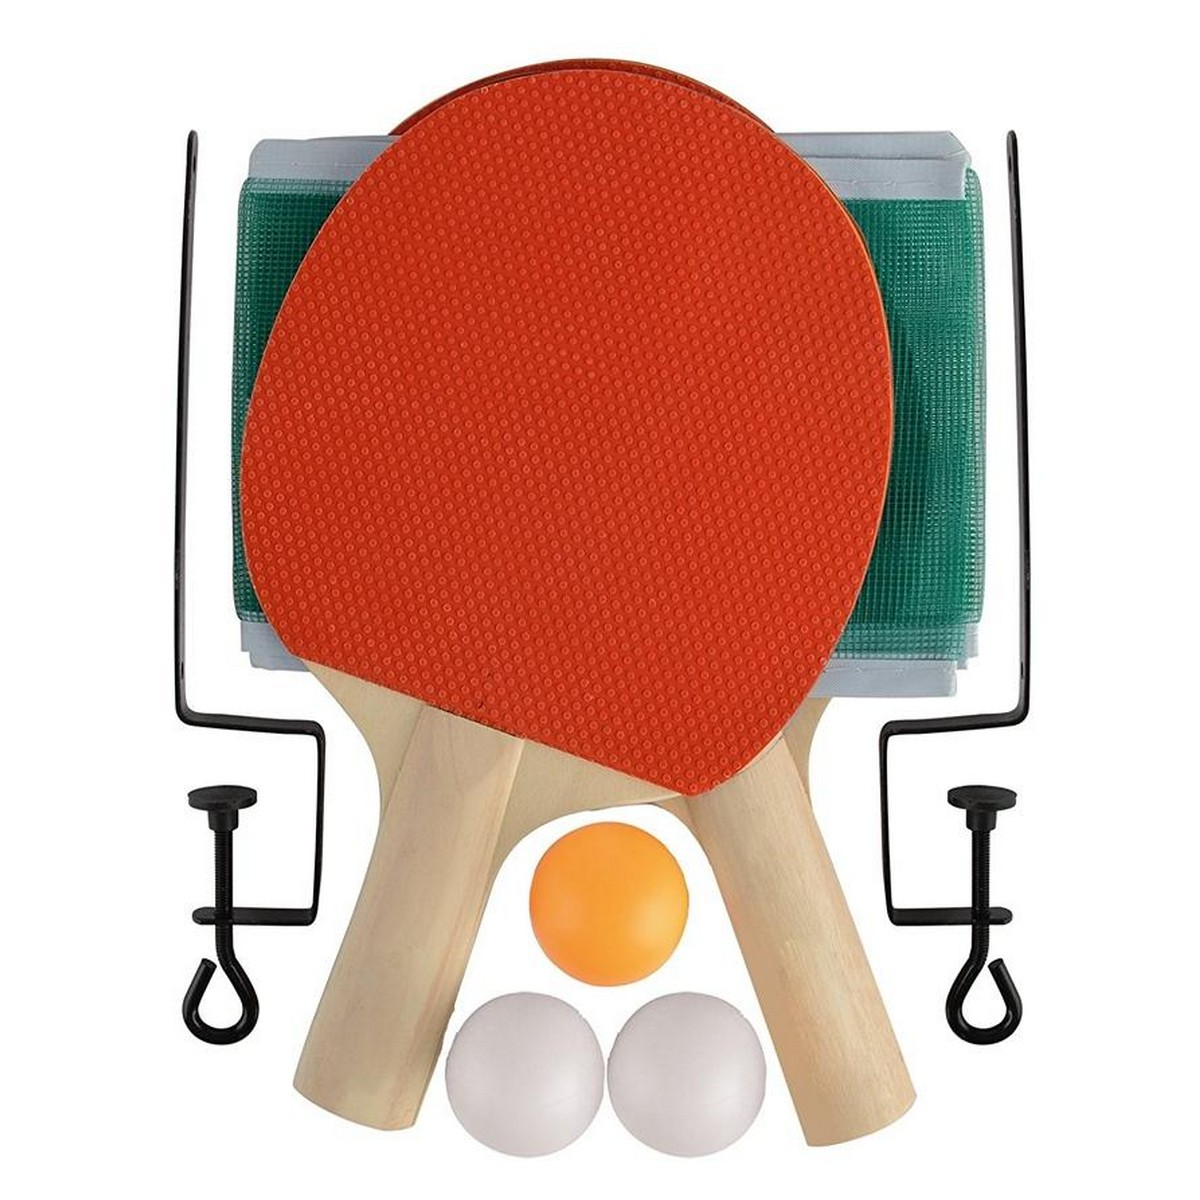 Ping Pong Table Tennis Racket Set With Net And Three Balls For Children, Kids